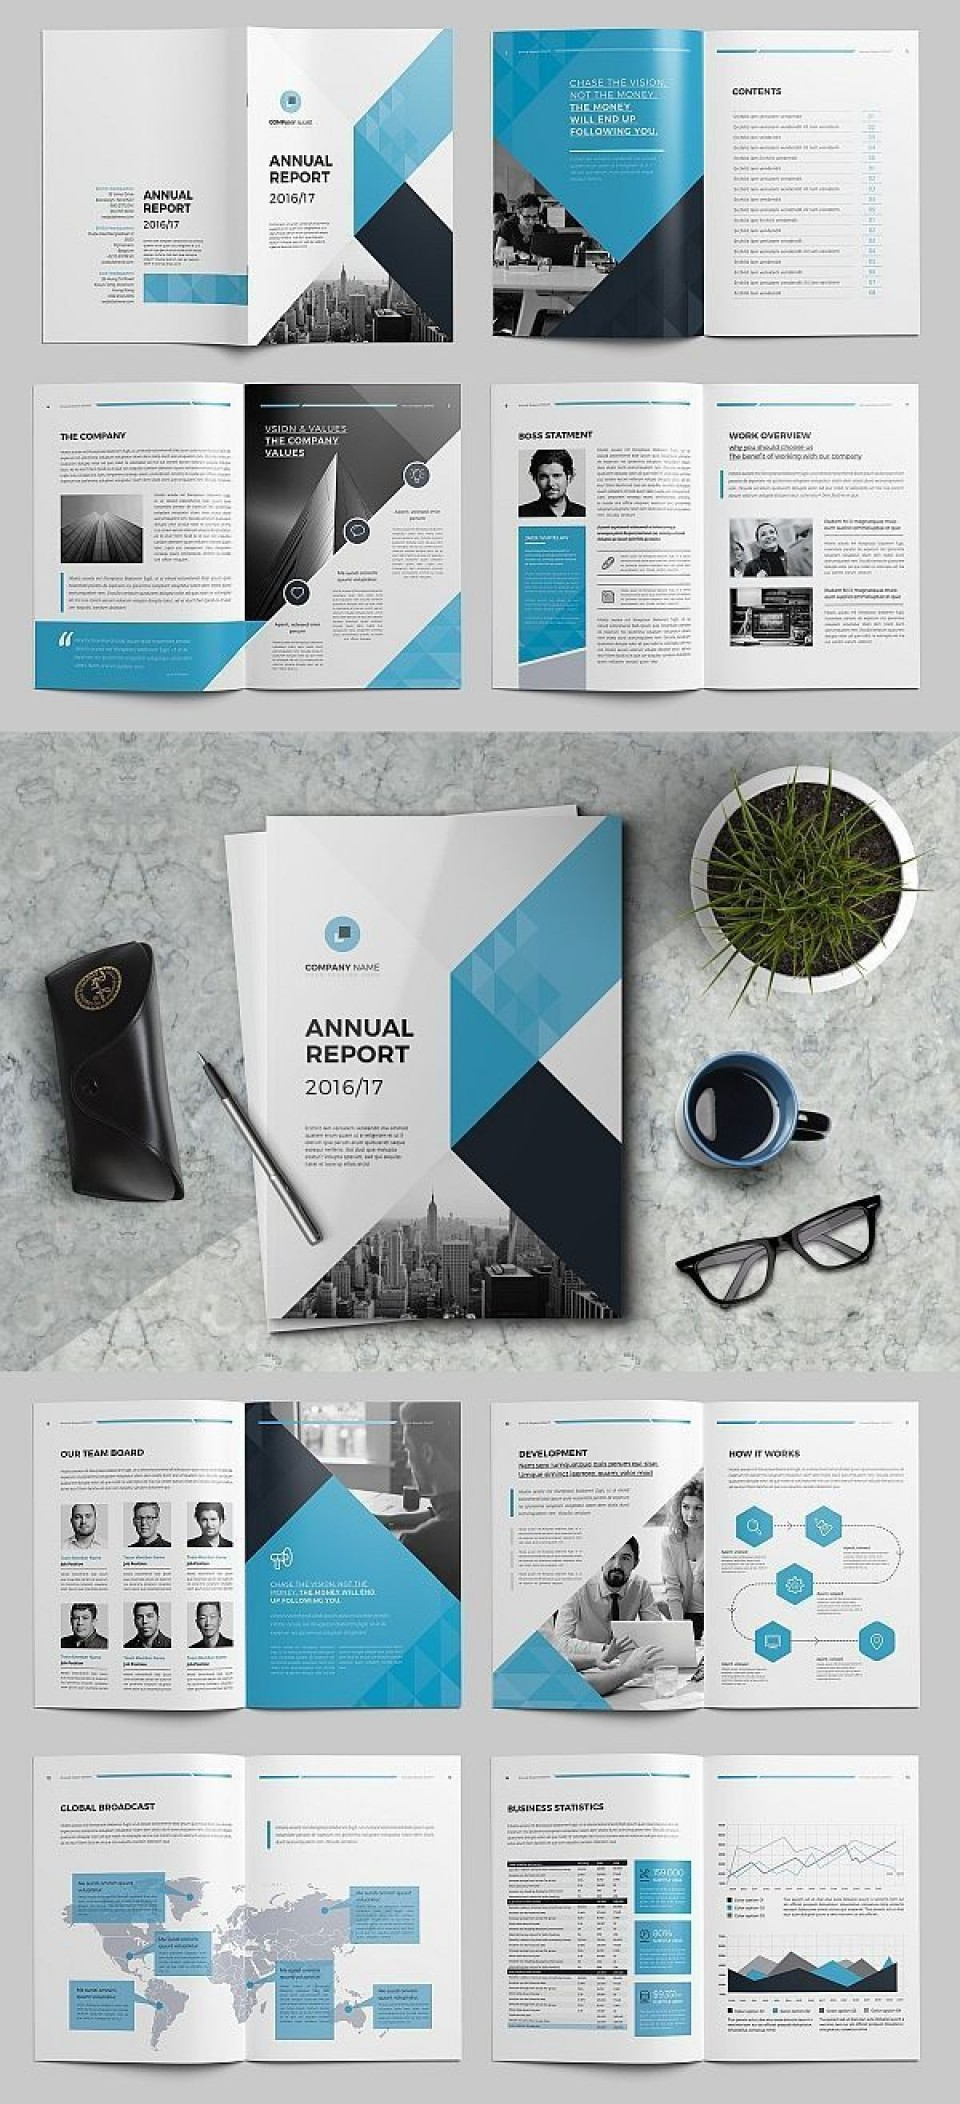 008 Fascinating Annual Report Design Template Indesign Photo  Free Download960